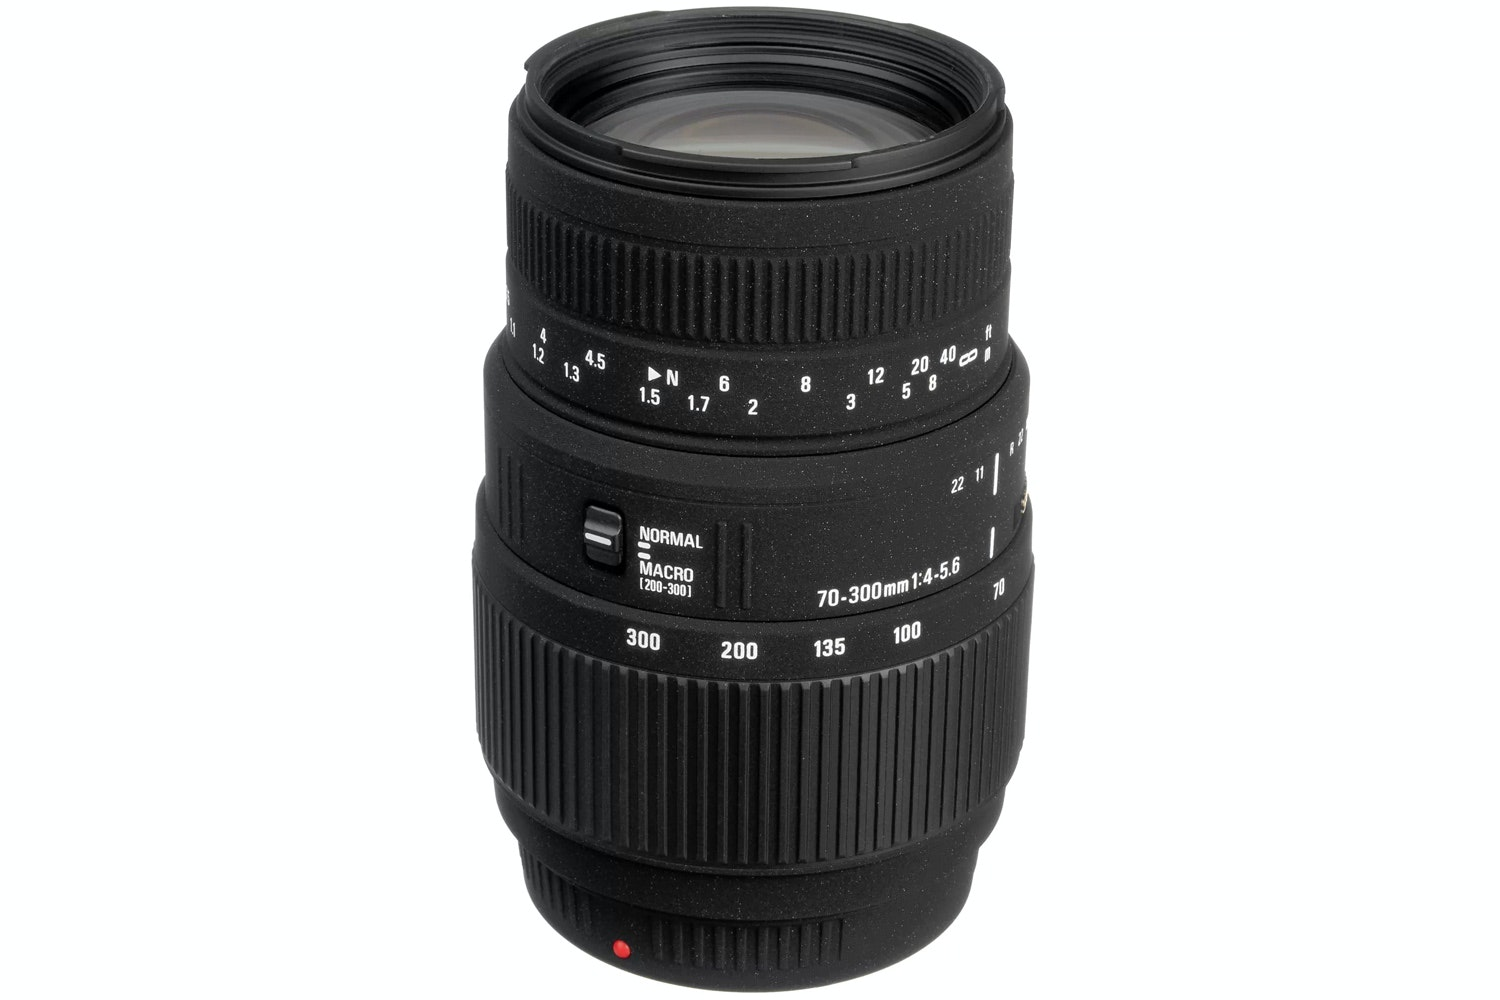 Sigma 70-300mm DG Macro lens for Canon